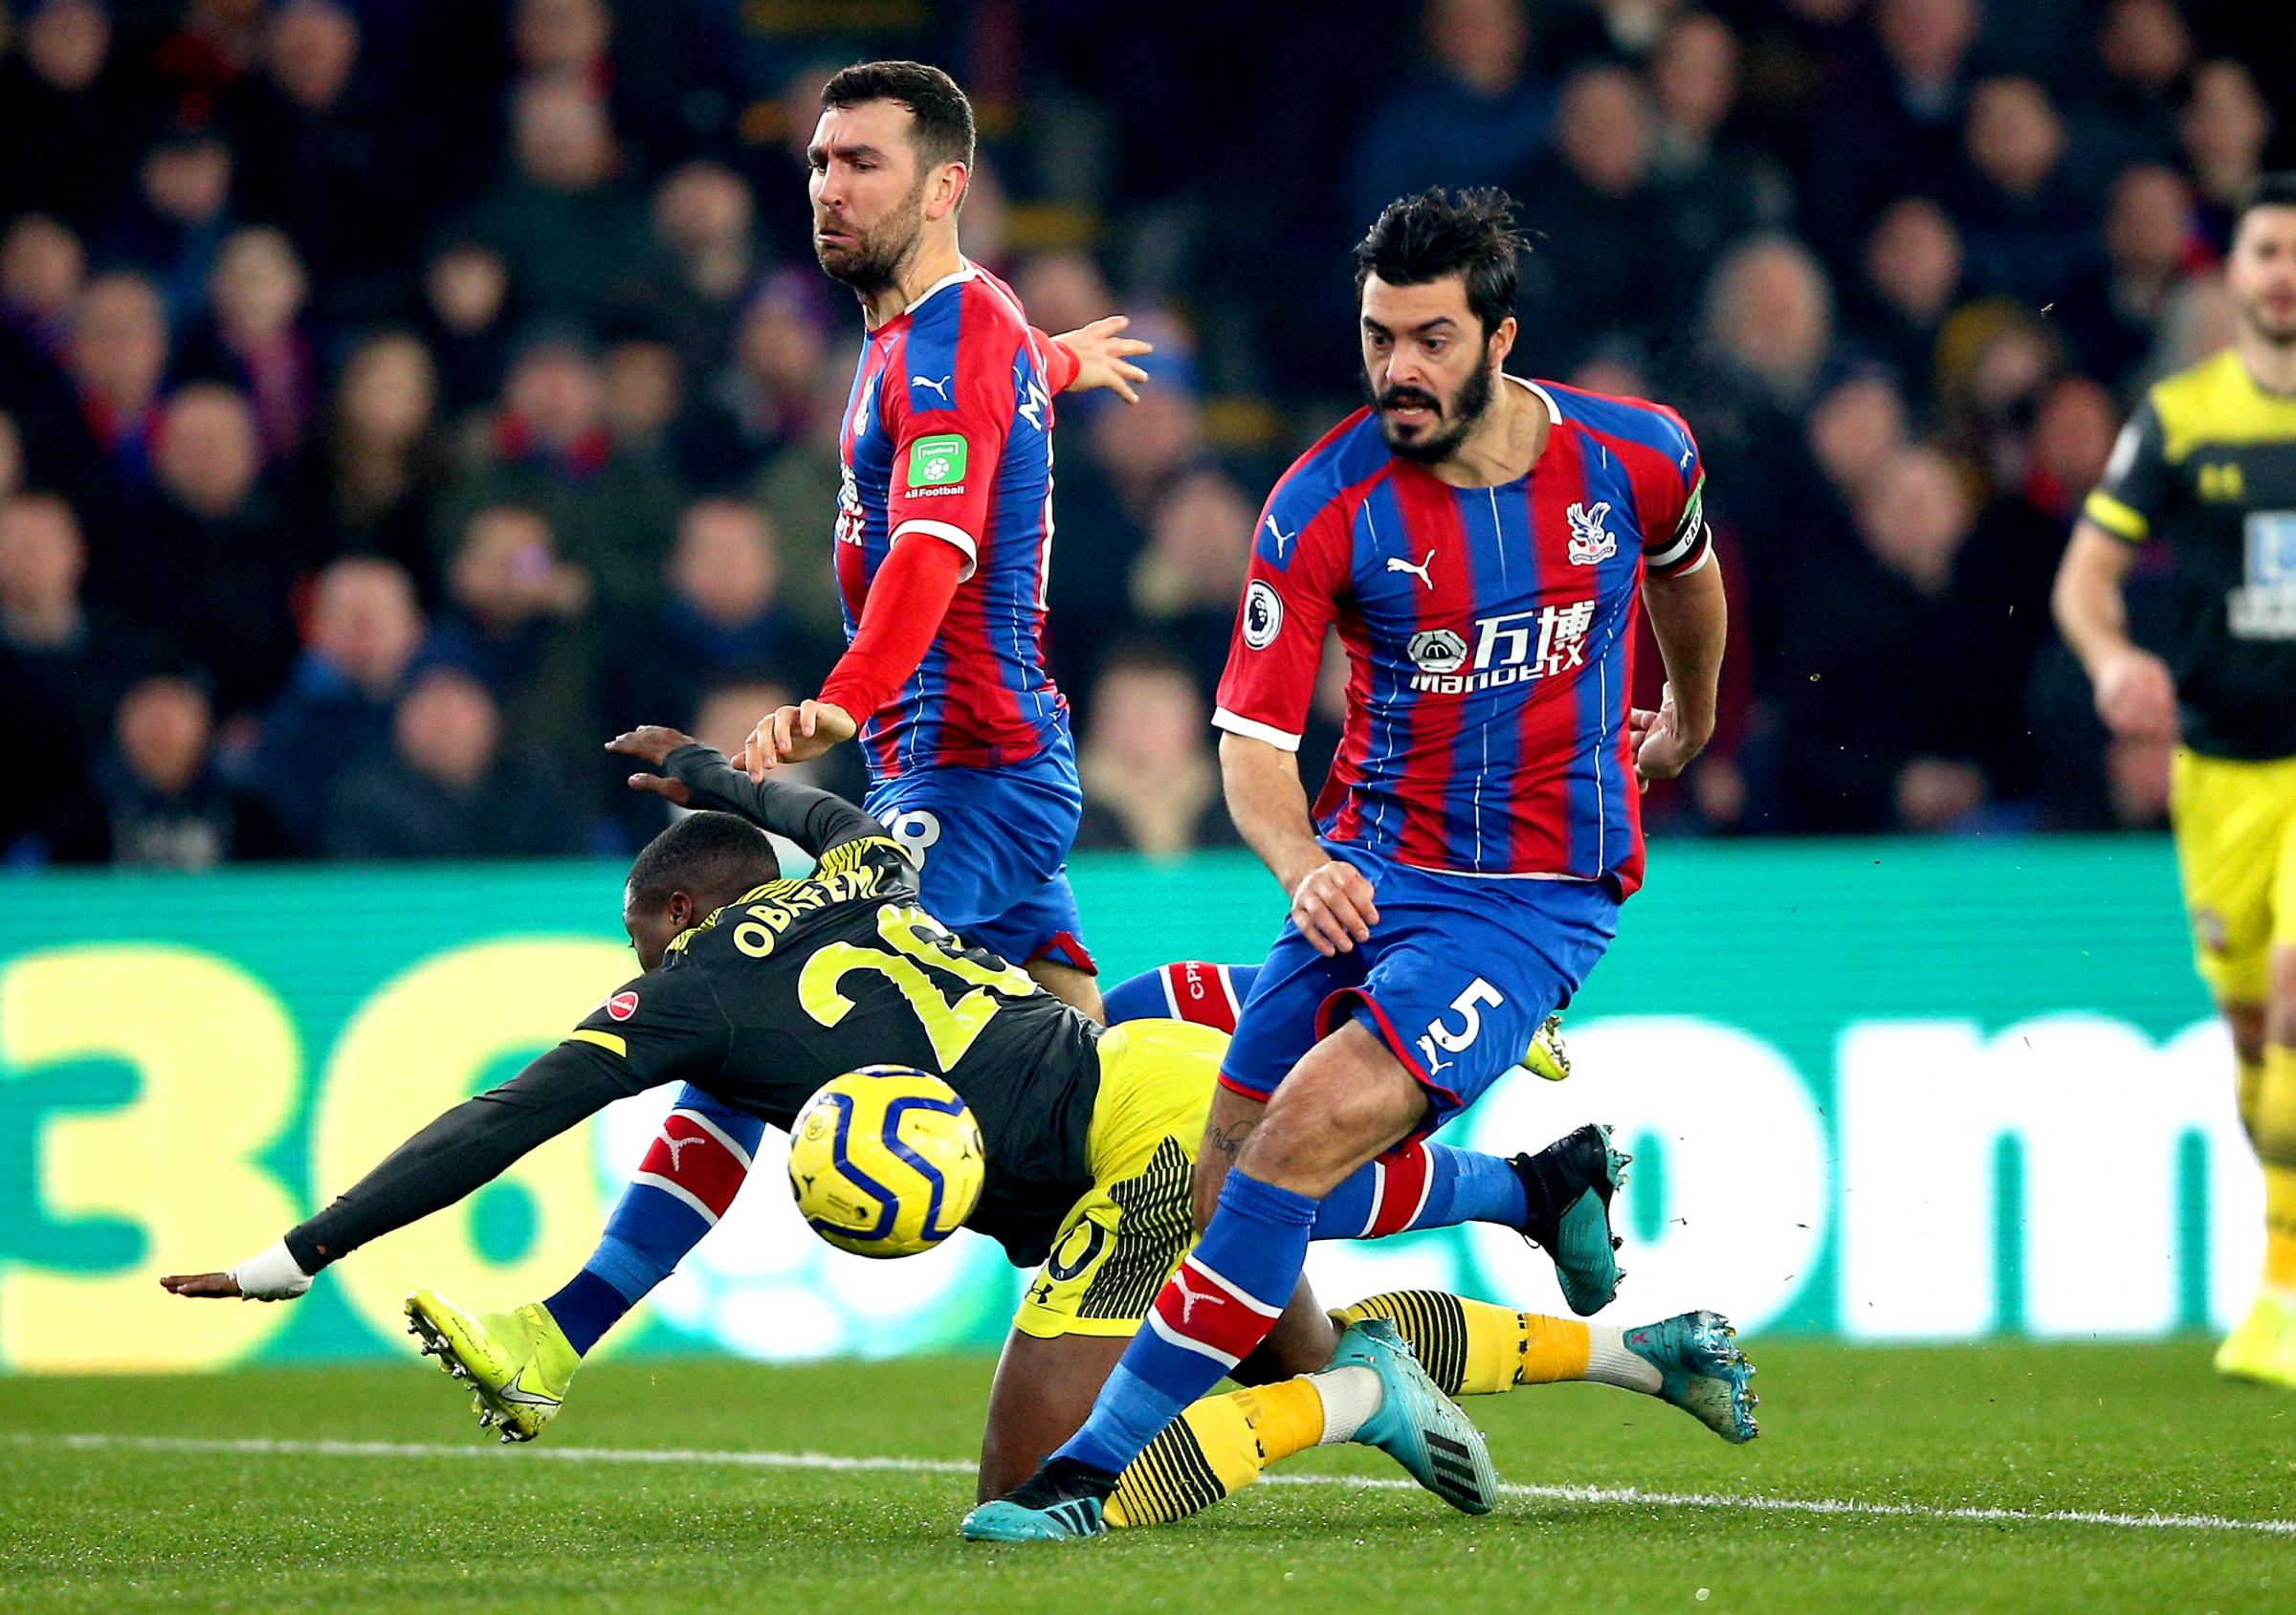 PLAYER RATINGS: Crystal Palace 0 Southampton 2 - who let frustration get the better of them?